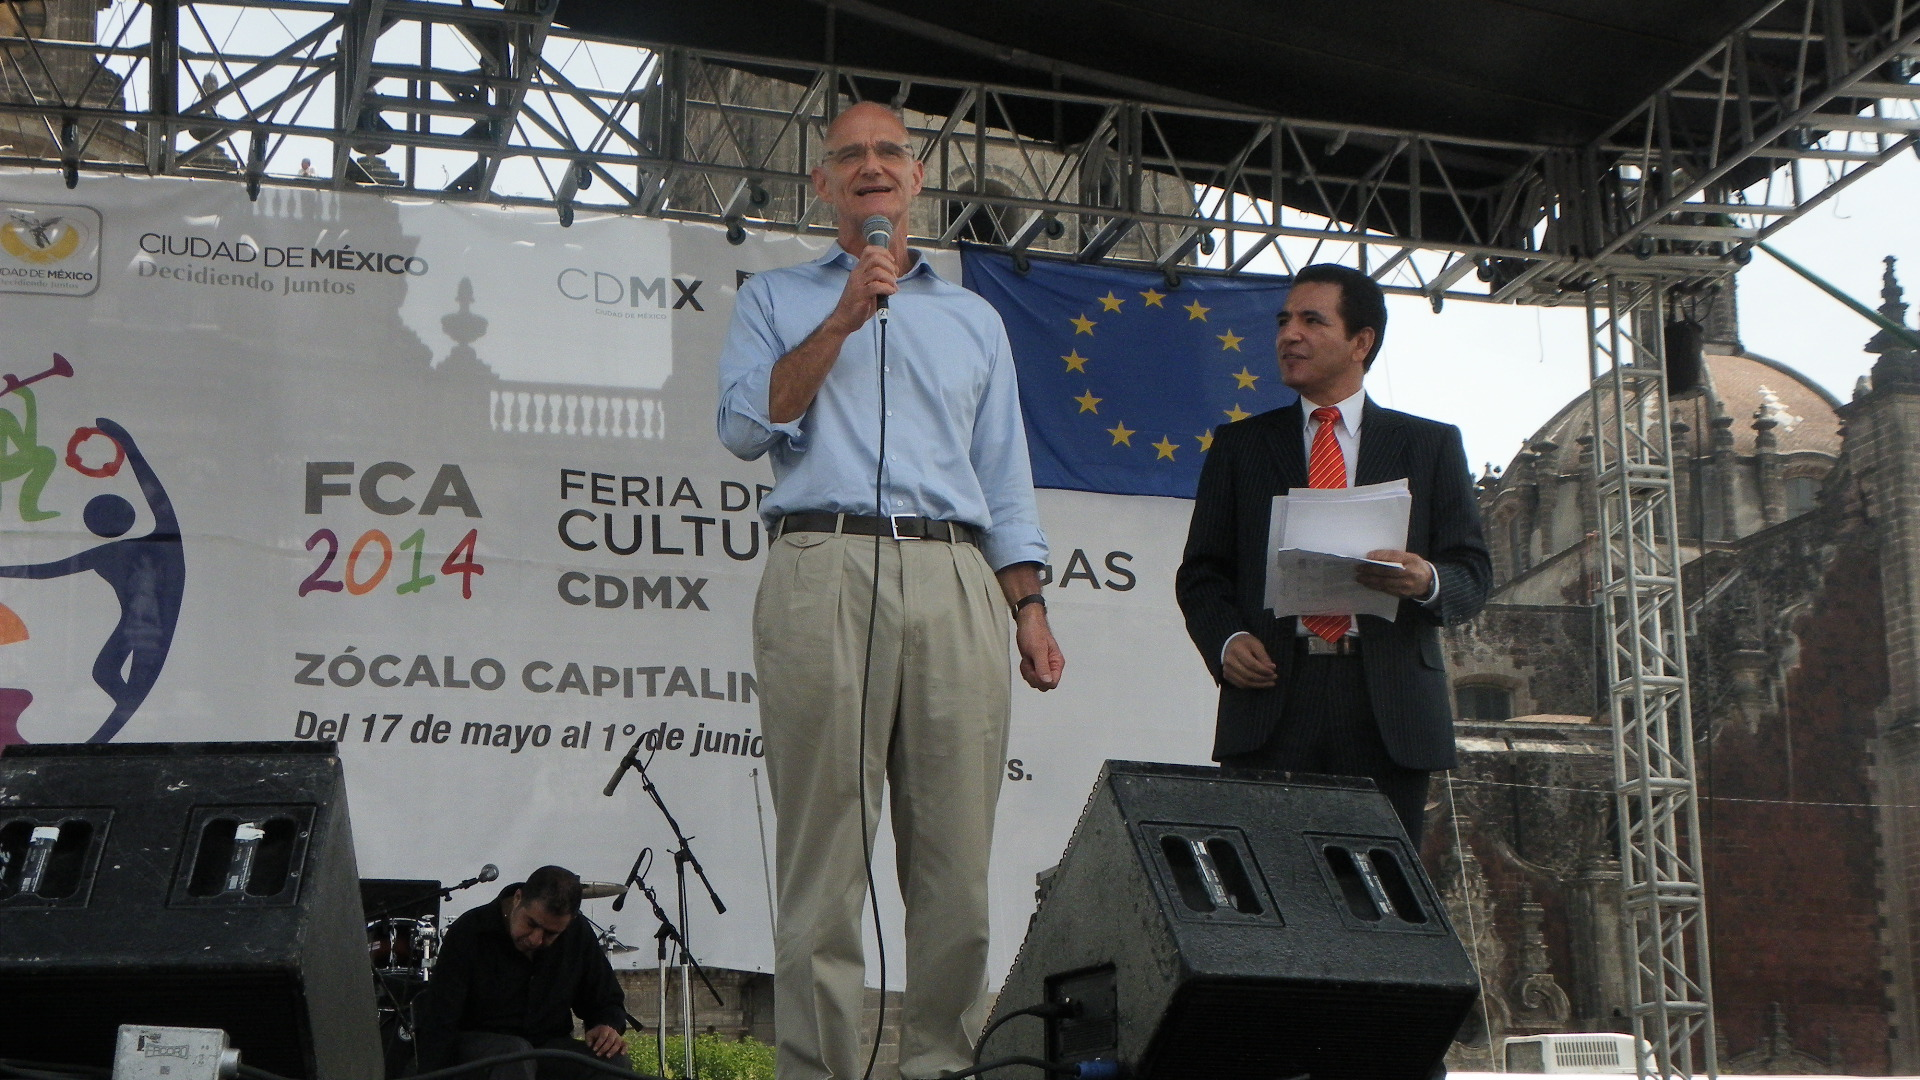 Celebrating Europe in the Cultural Fair of Mexico City